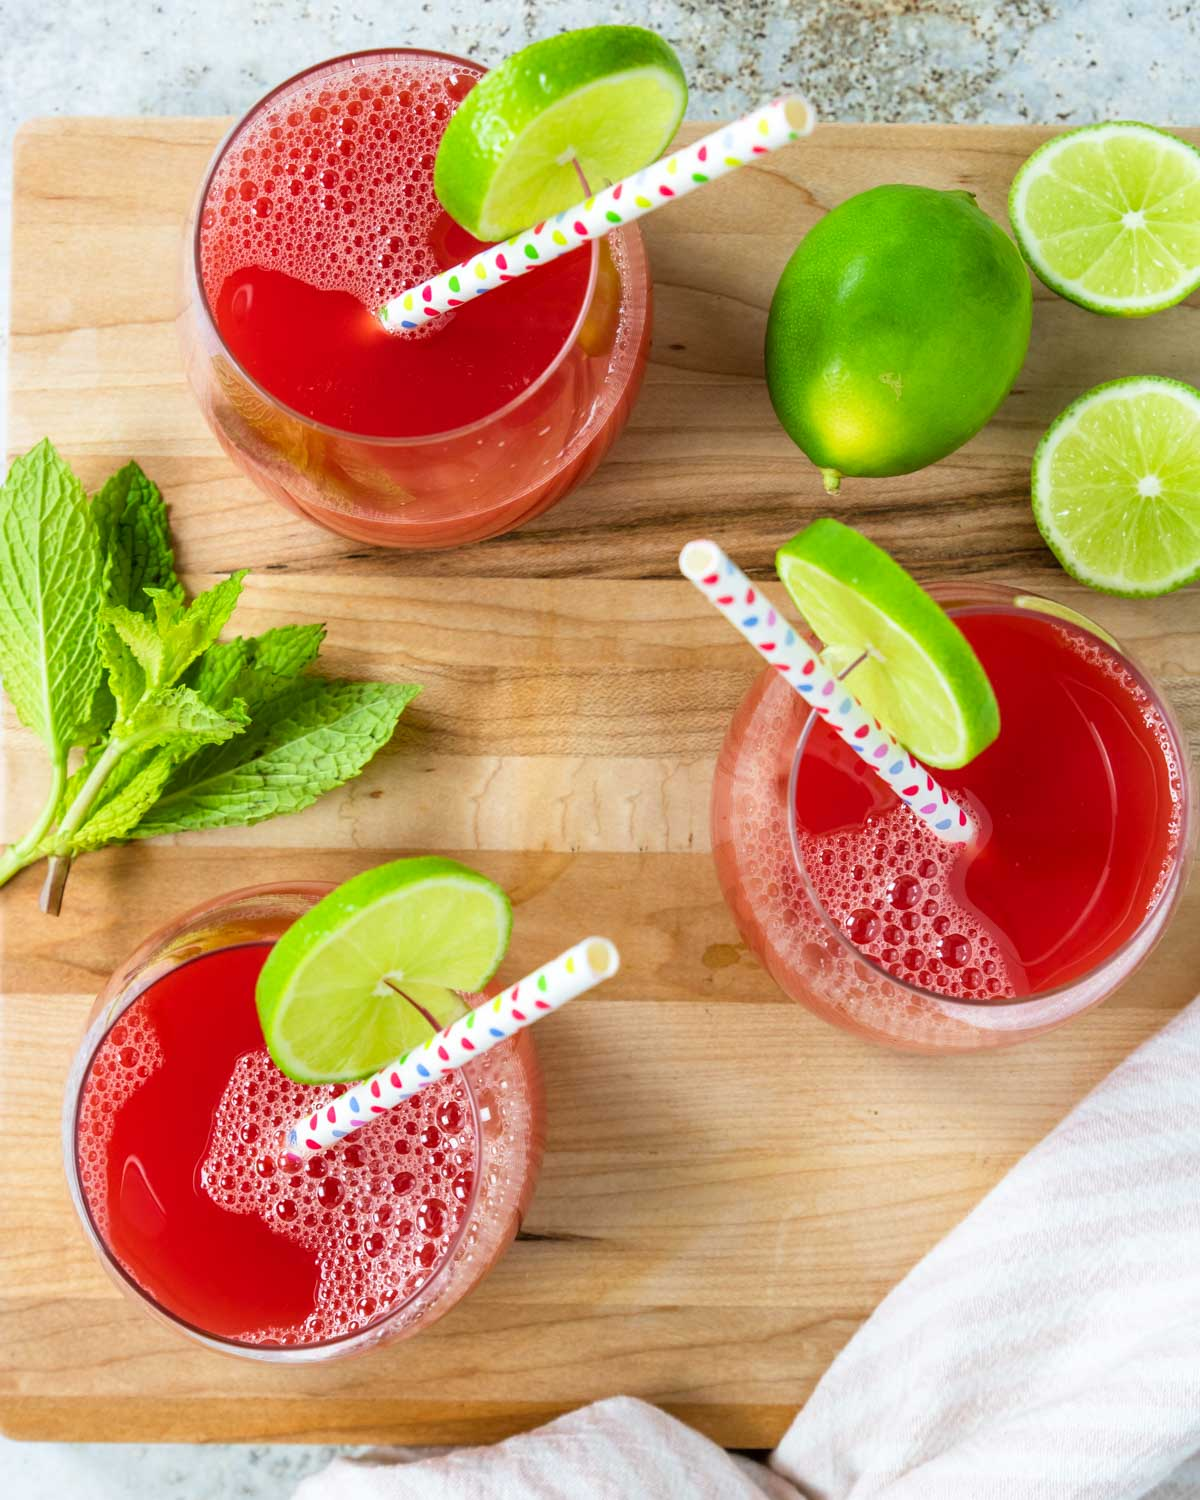 three glasses of watermelon juice from above garnished with limes